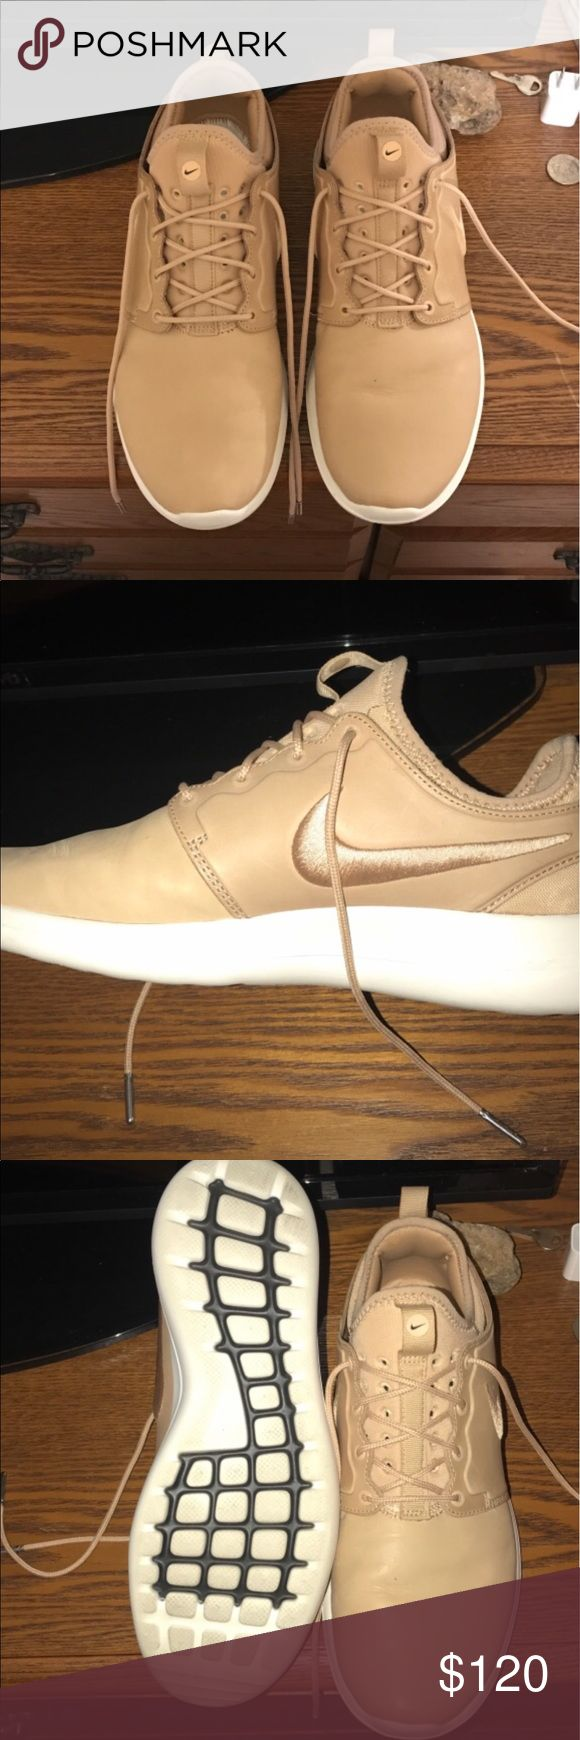 Custom Leather Nike Roshe's Bought from Bodega (custom shoe store in Boston, MA) - these shoes are basically new. No flaws. I will have the bottoms cleaned before shipping! All leather! They are men's shoes but I wear a women's size 9.5 and bought them for myself. Very comfortable and fashionable. Nike Shoes Athletic Shoes